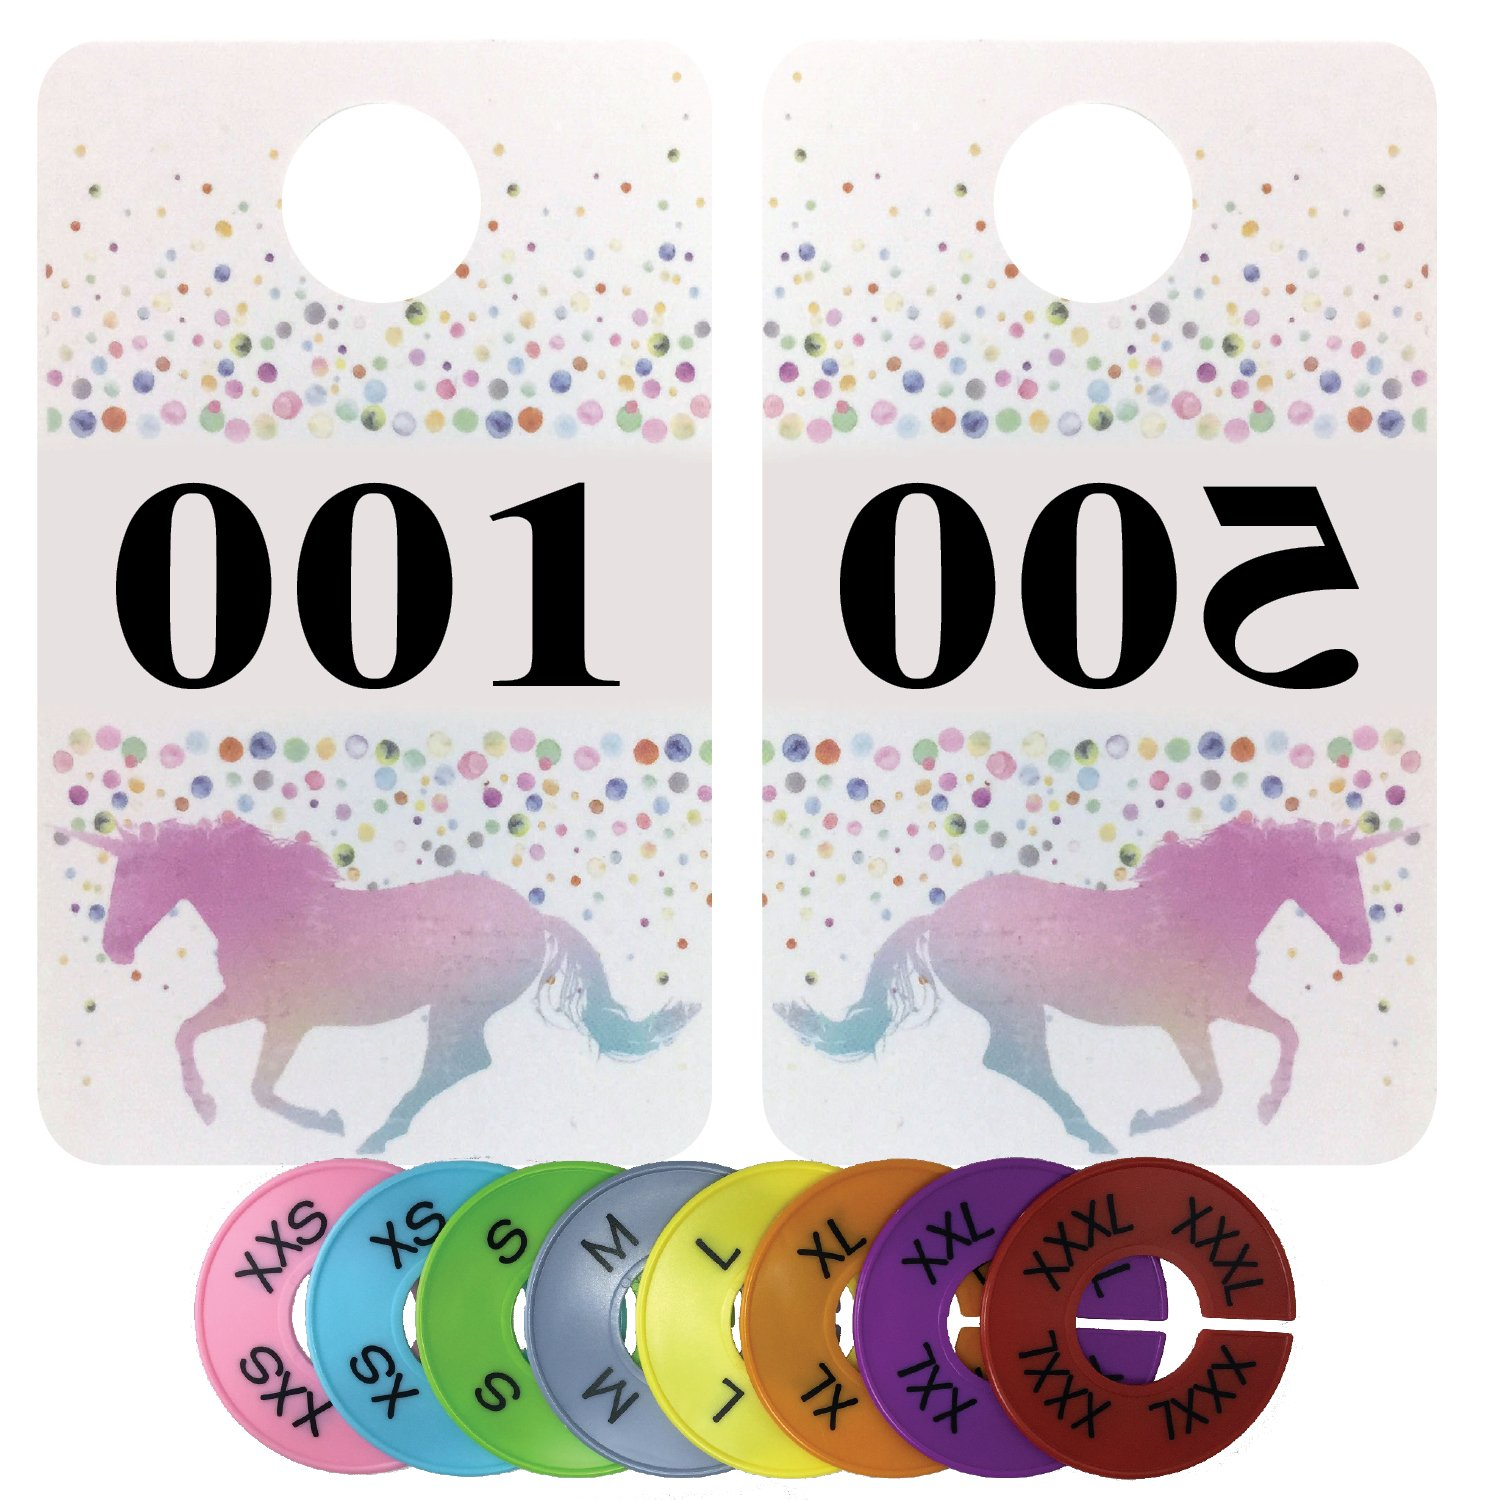 251e8328318c Details about Live Sales Reverse Numbered Tags - Plastic Coat Hanger Number  Tags | Mirrored